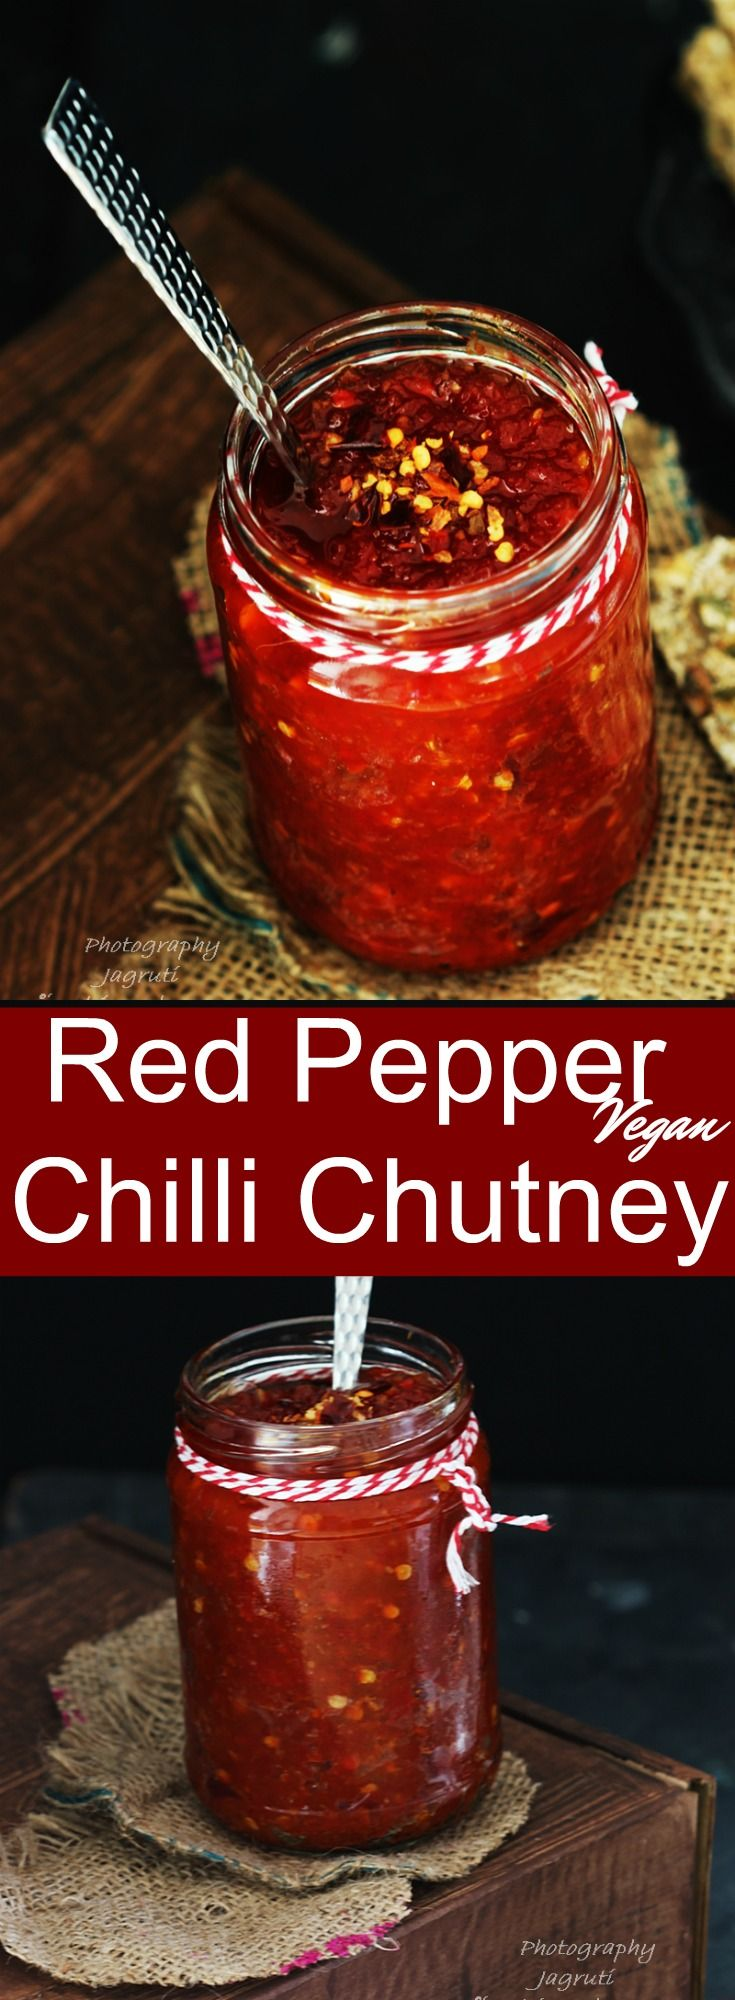 Red Pepper and Chilli Chutney